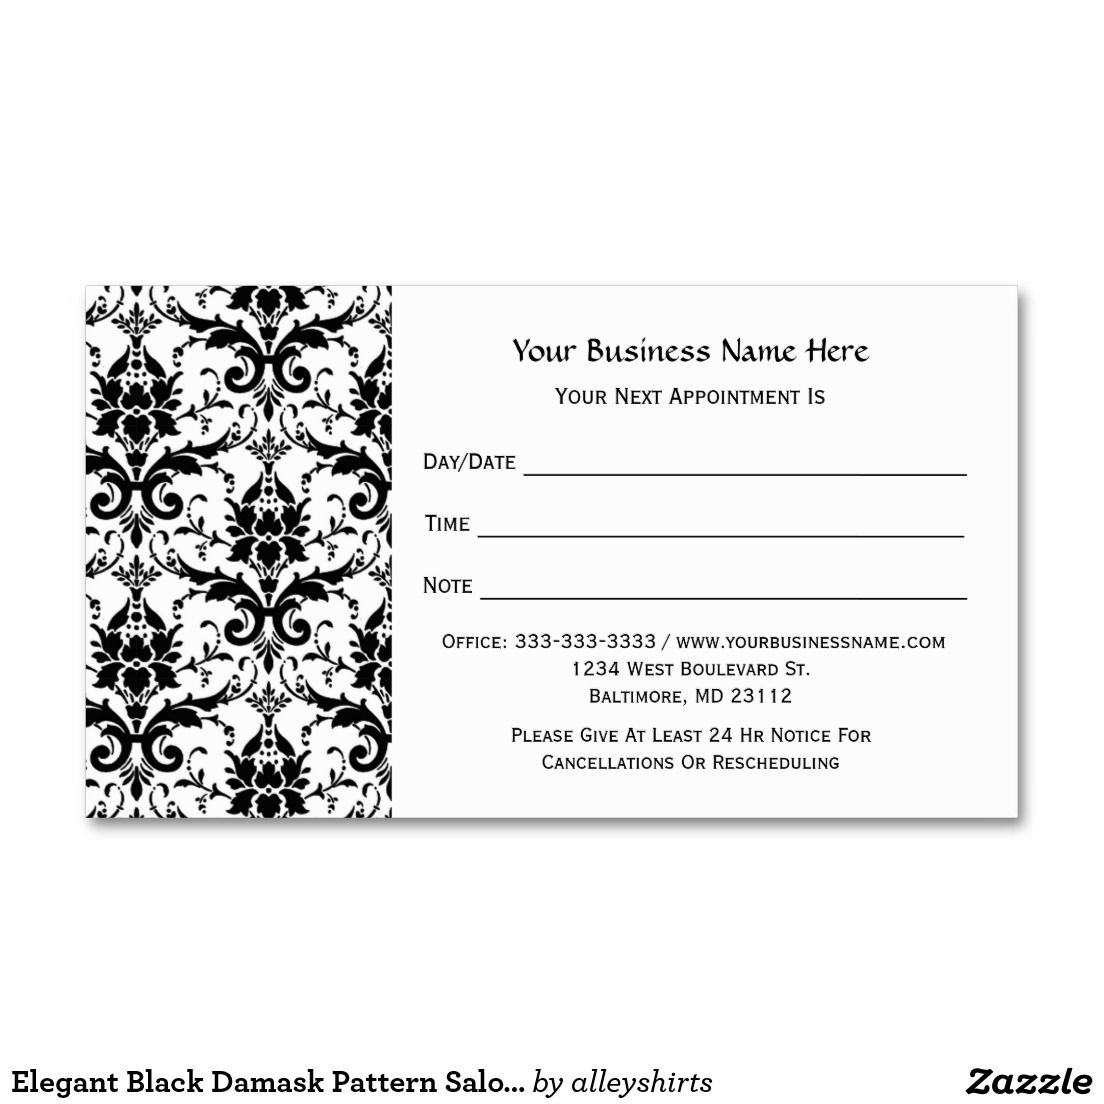 Elegant Black Damask Pattern Salon Appointment Business Card - Appointment business card template